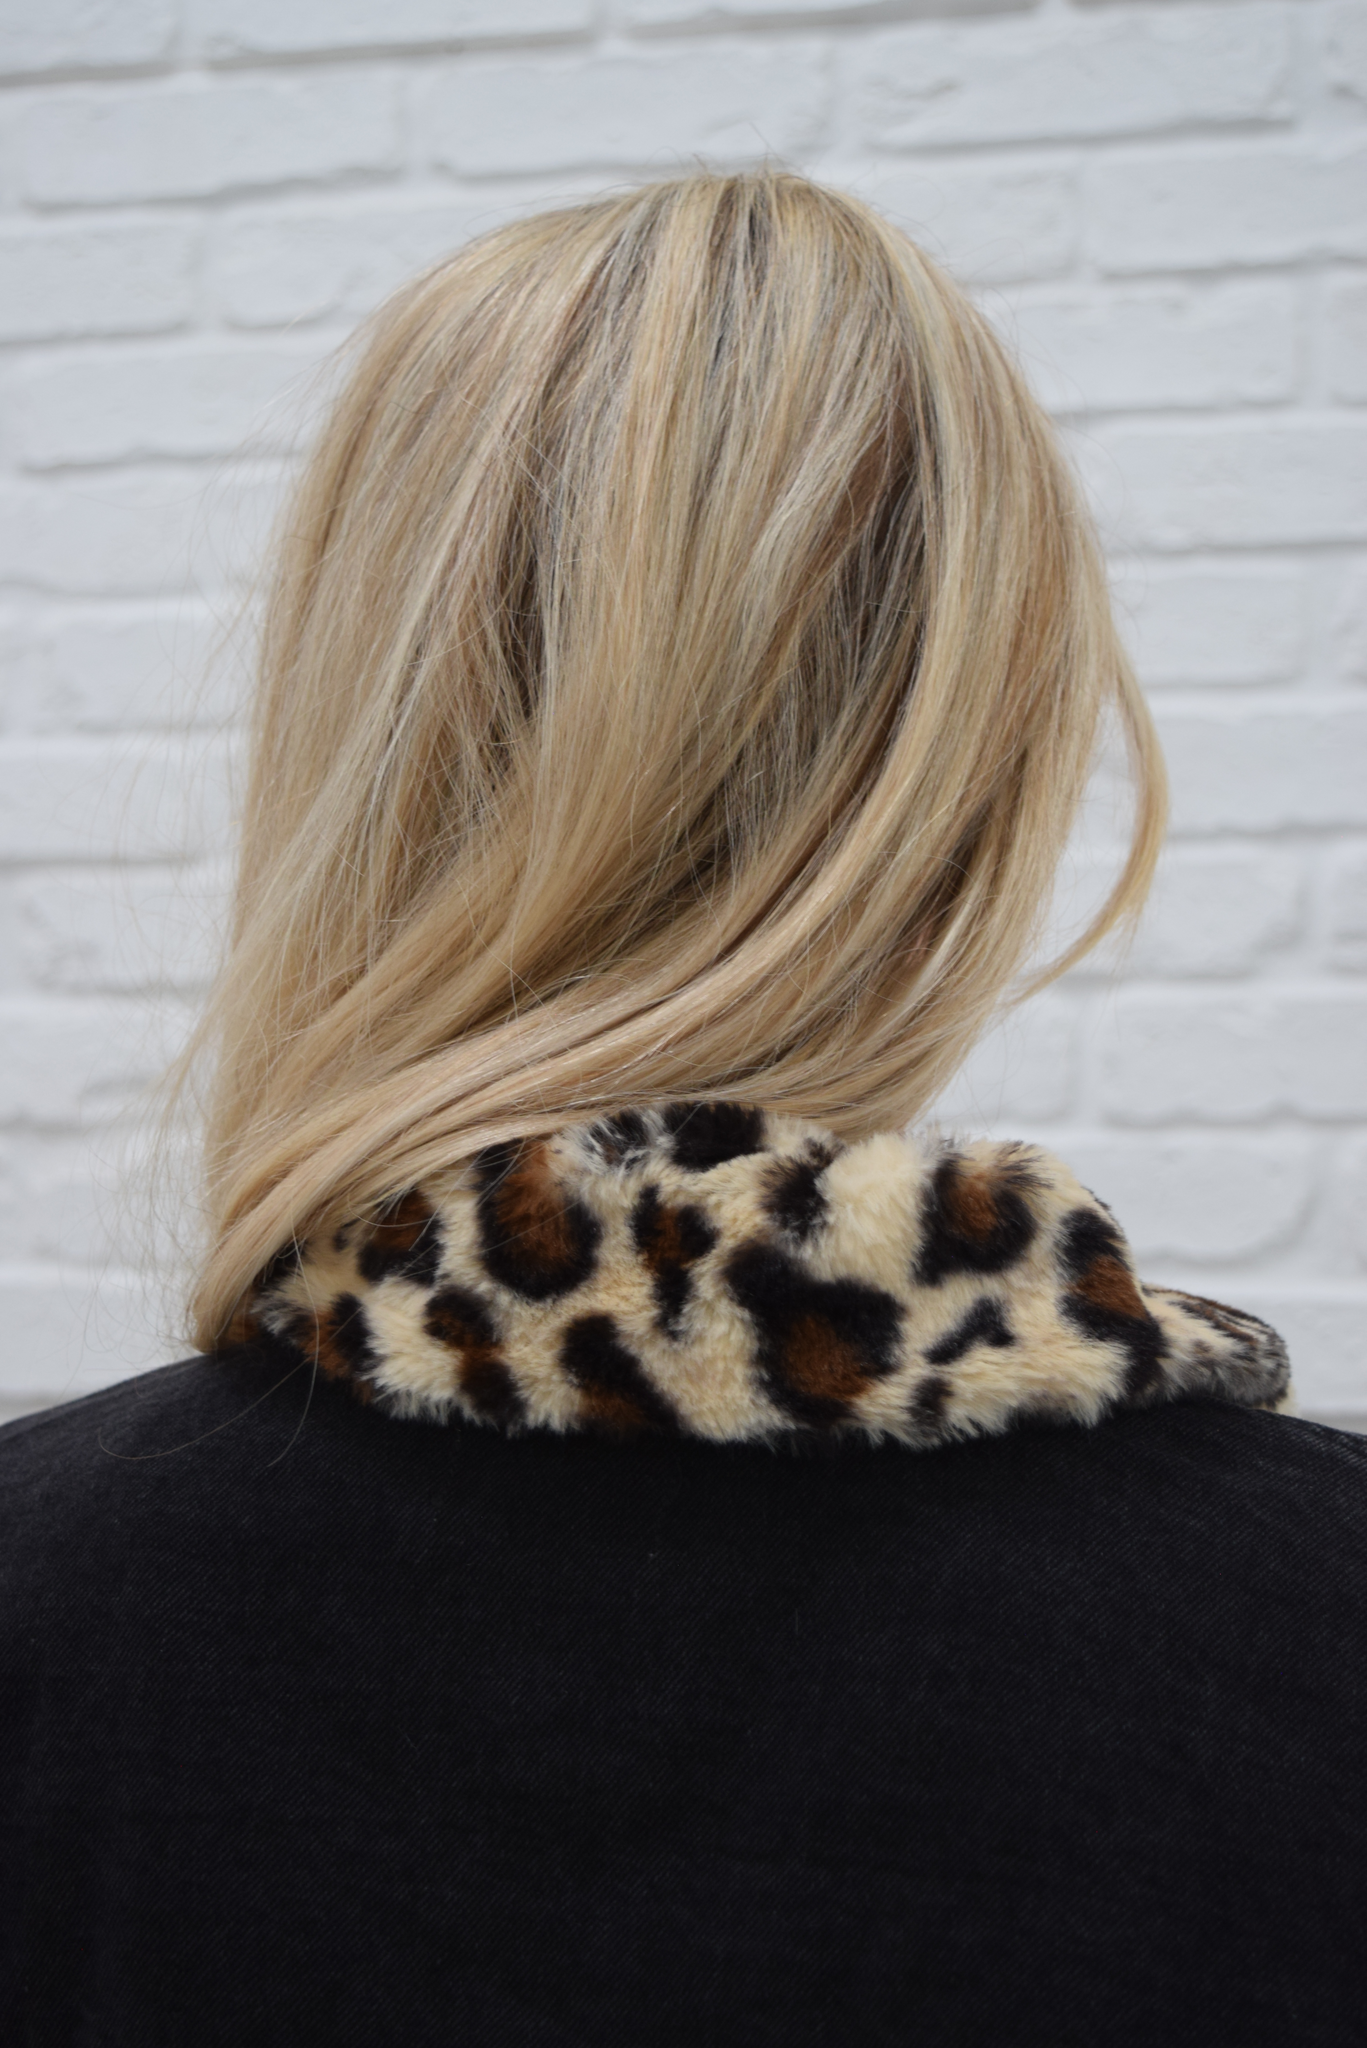 It Girl leopard trucker jacket